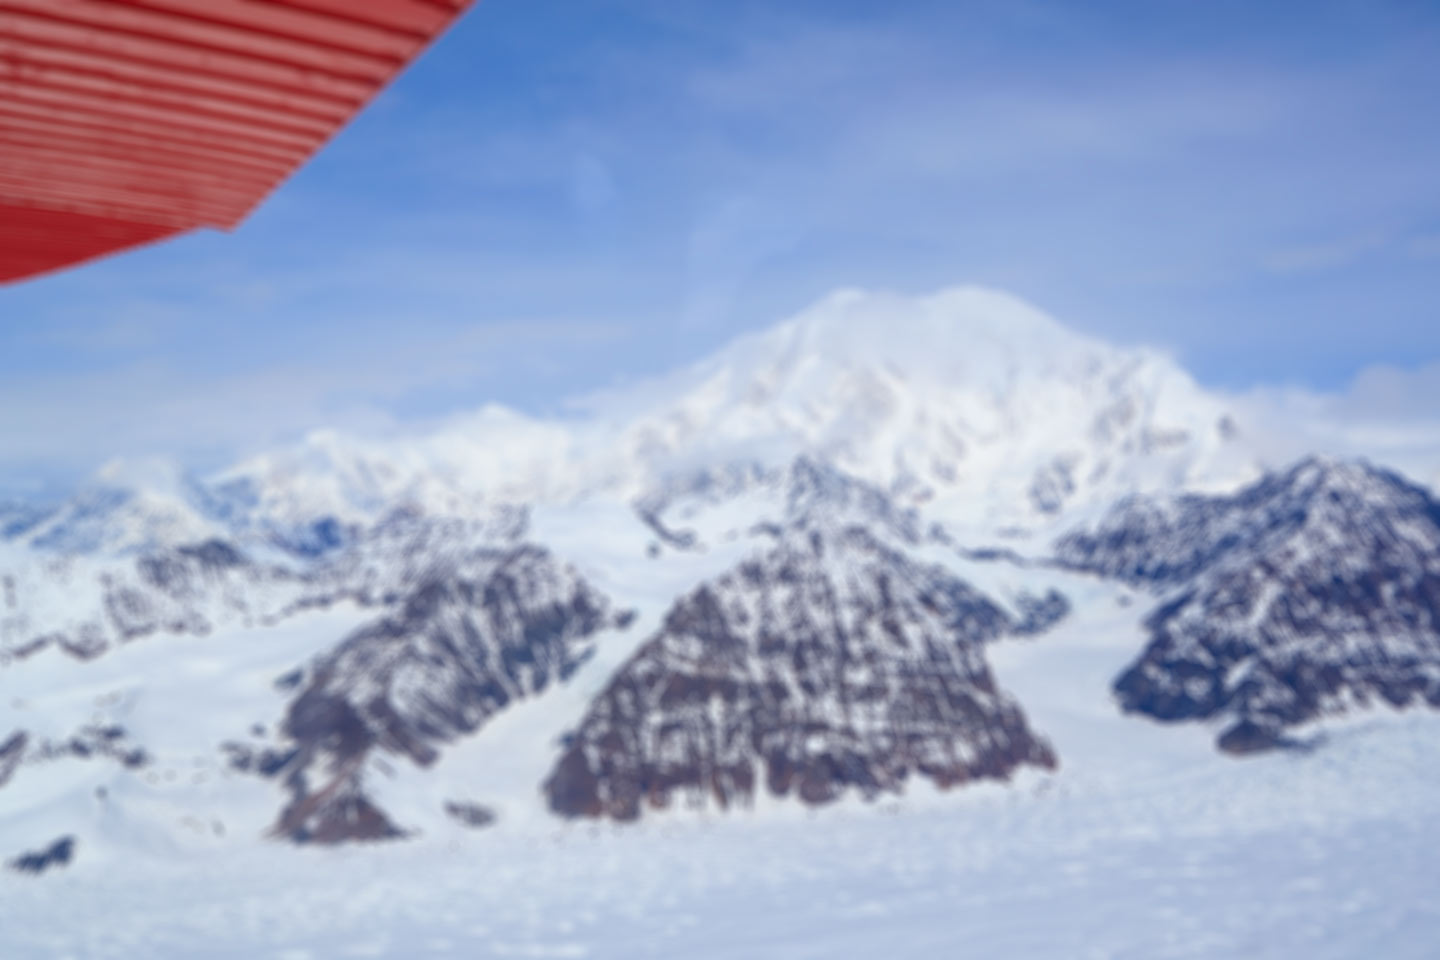 Sheldon Air Service Anchorage Talkeetna Denali flights